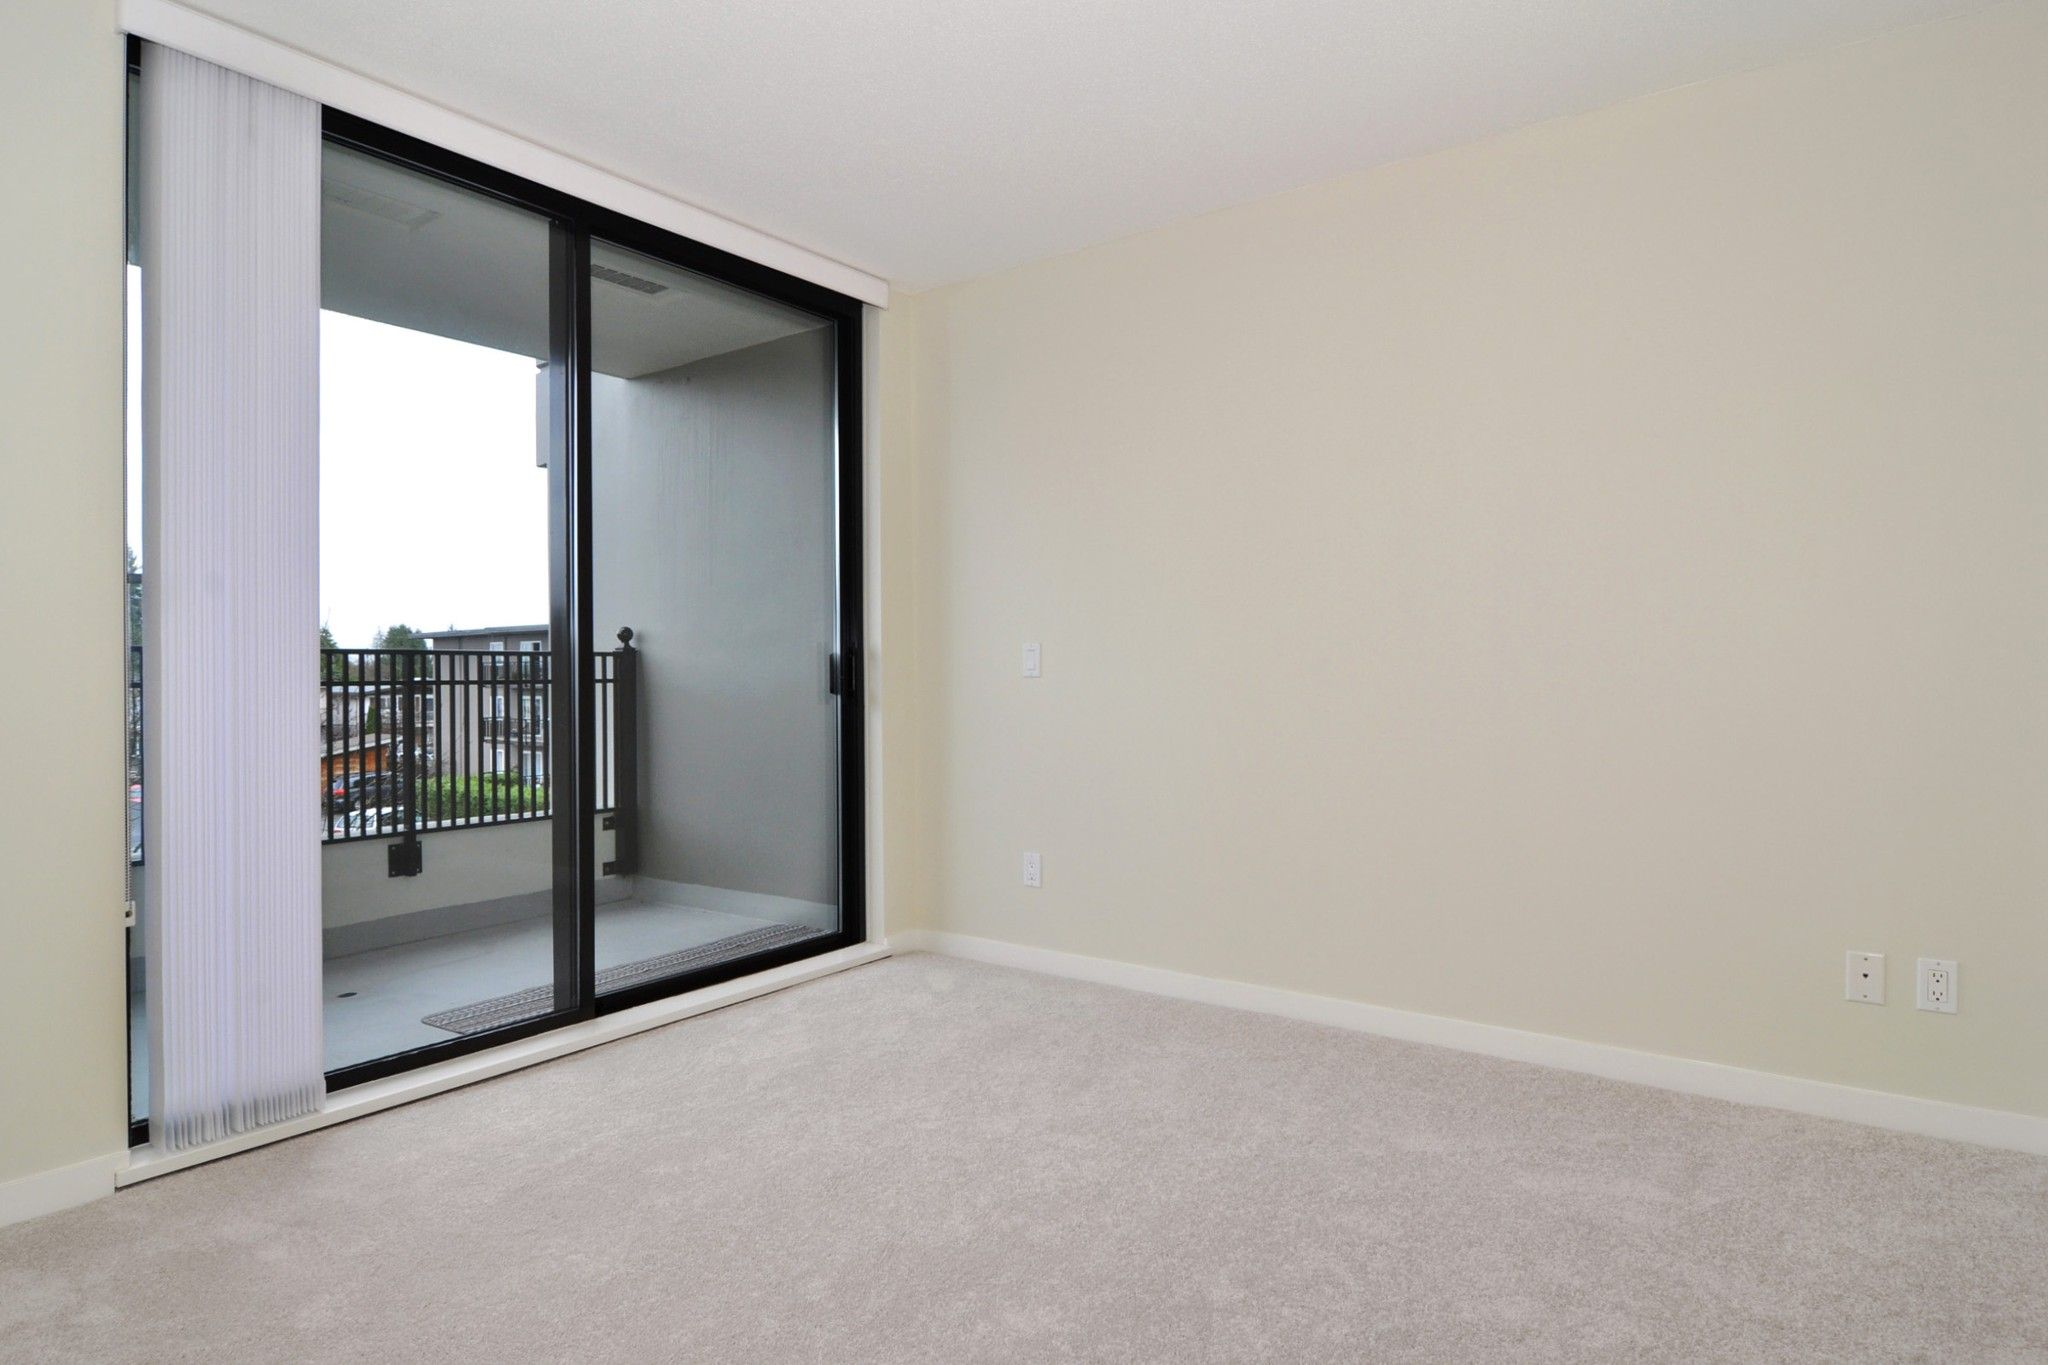 """Photo 9: Photos: 312 7138 COLLIER Street in Burnaby: Highgate Condo for sale in """"STANDFORD HOUSE"""" (Burnaby South)  : MLS®# R2224760"""